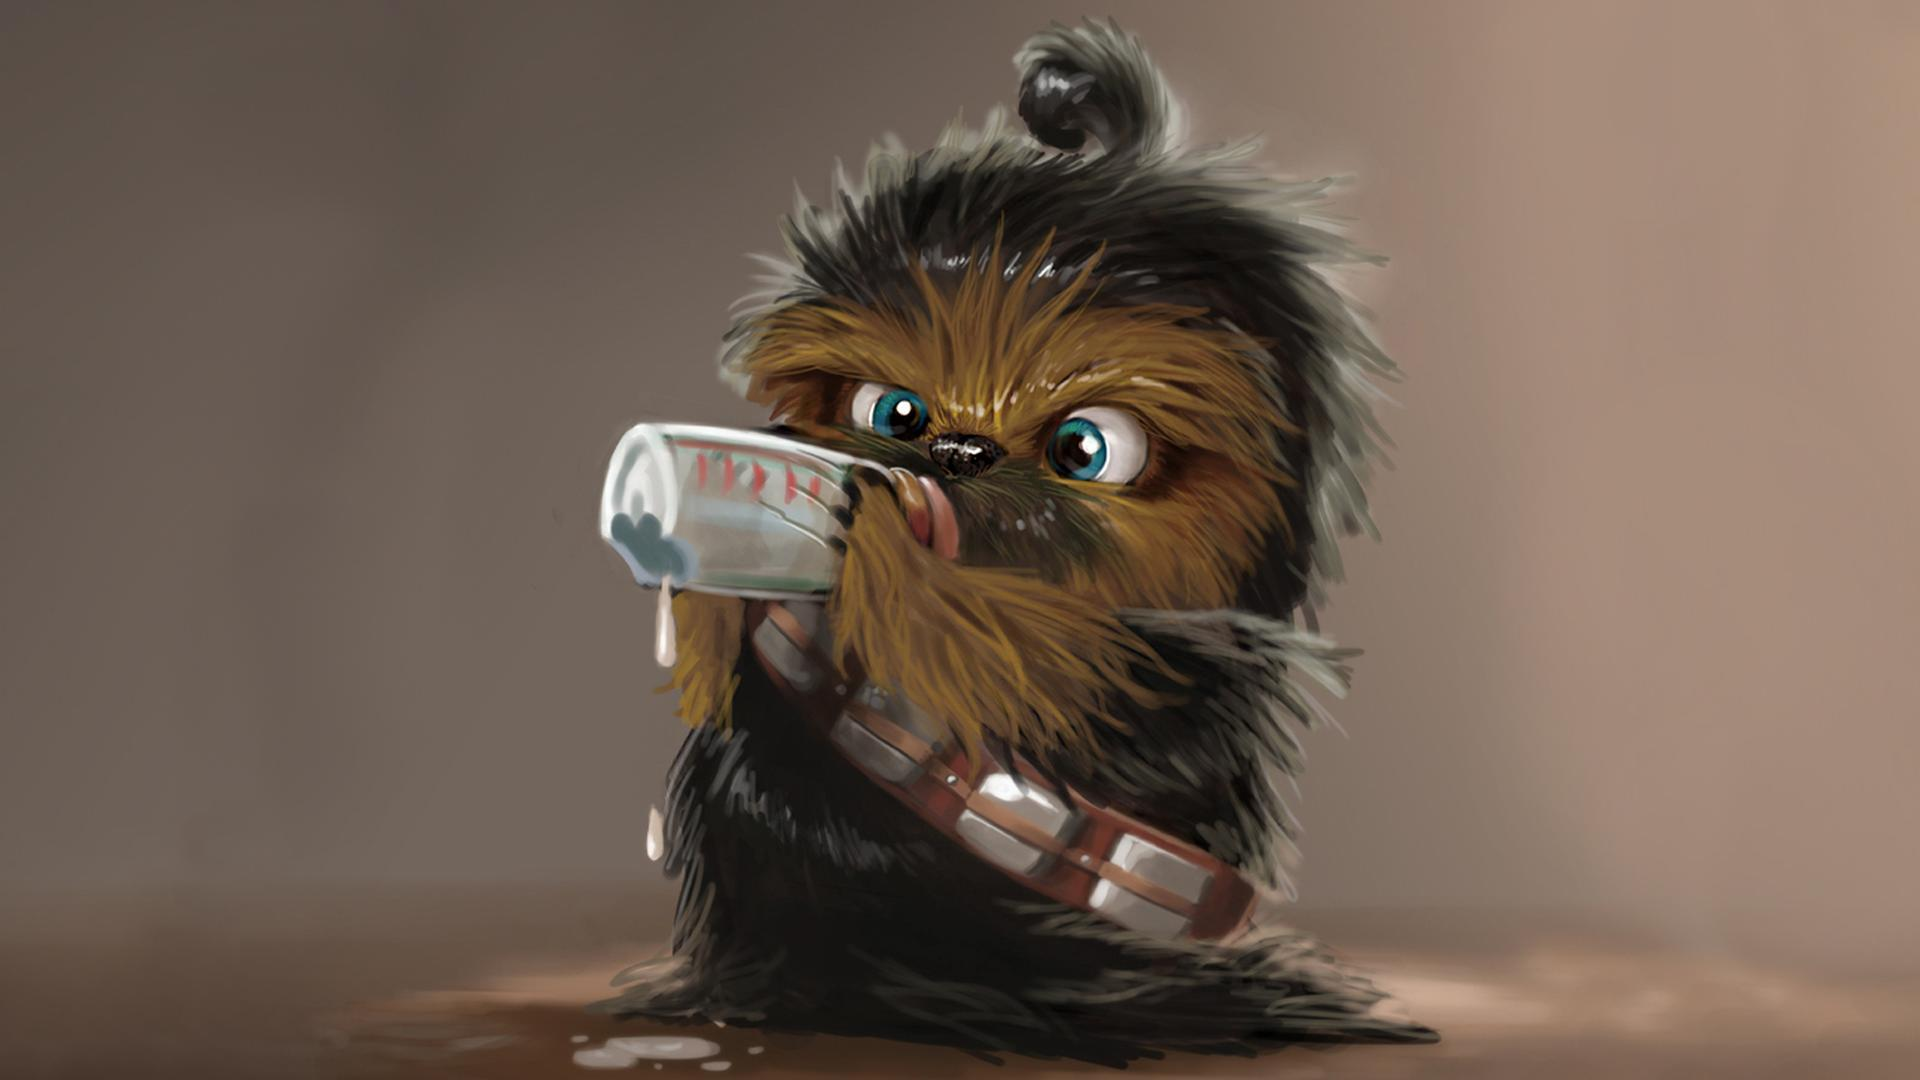 star wars chewbacca wallpaper - photo #8